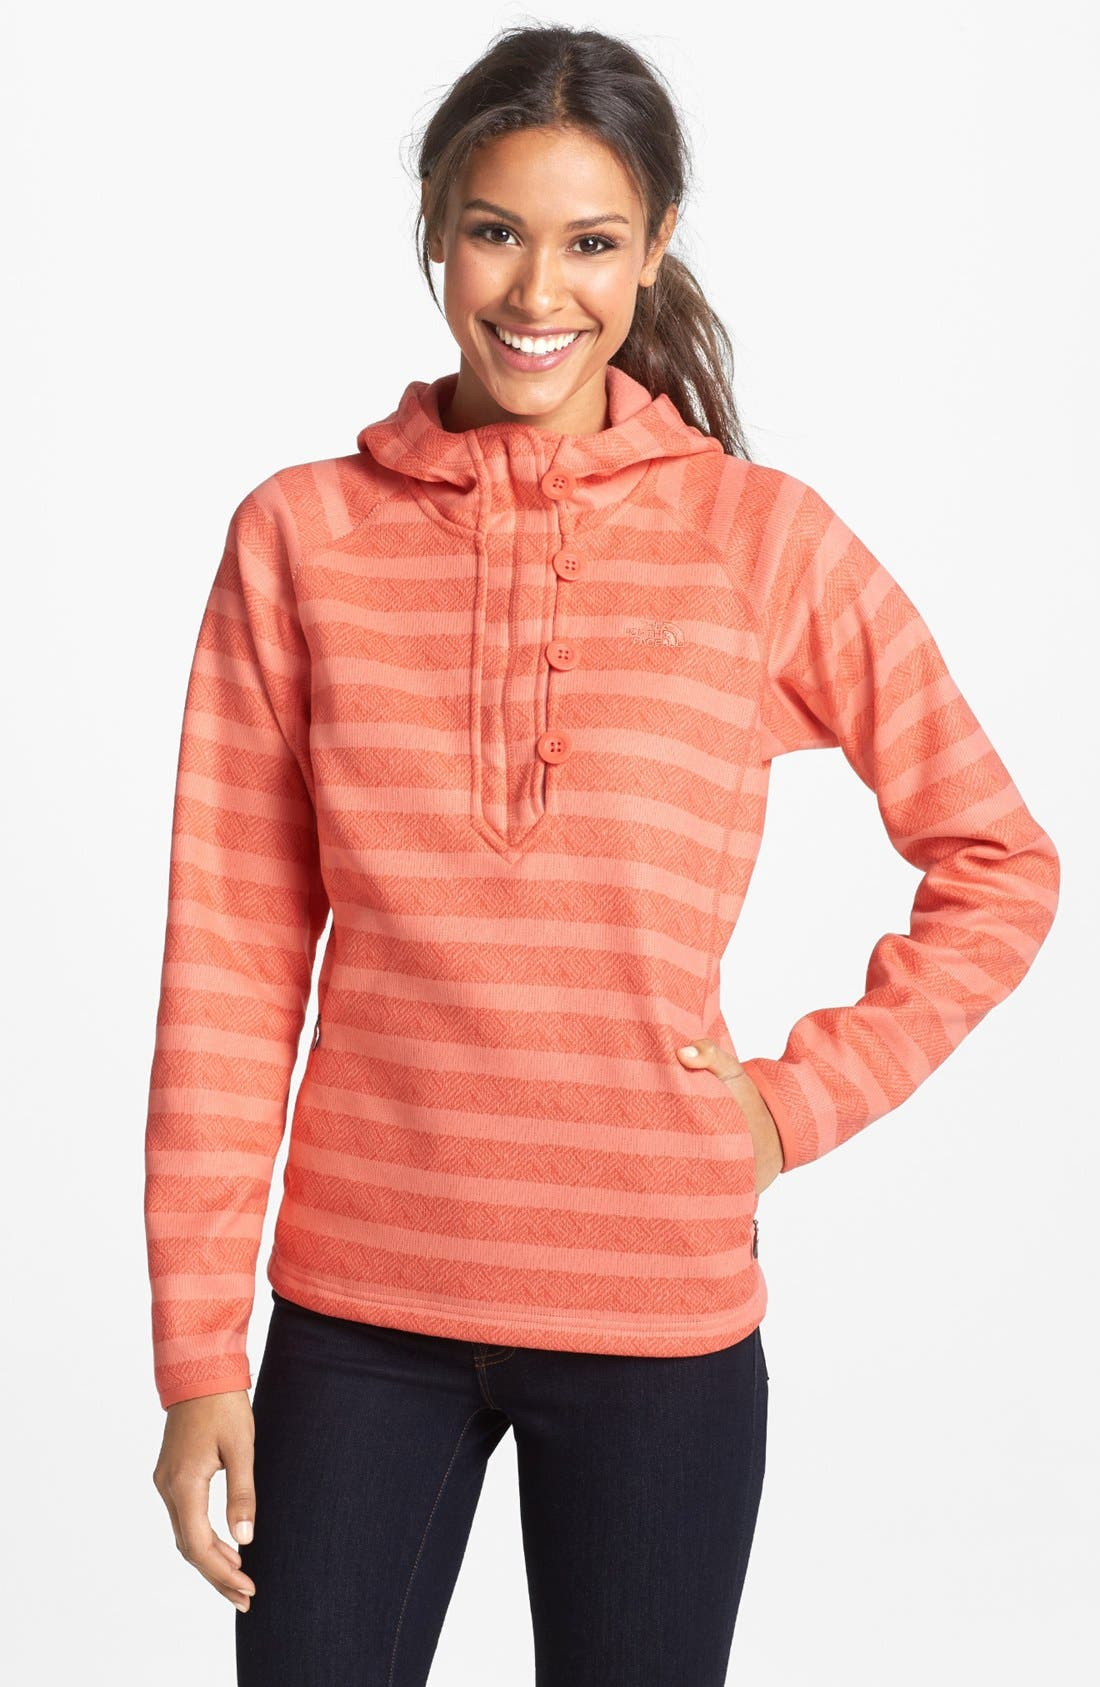 Alternate Image 1 Selected - The North Face 'Novelty Crescent Sunset' Hoodie